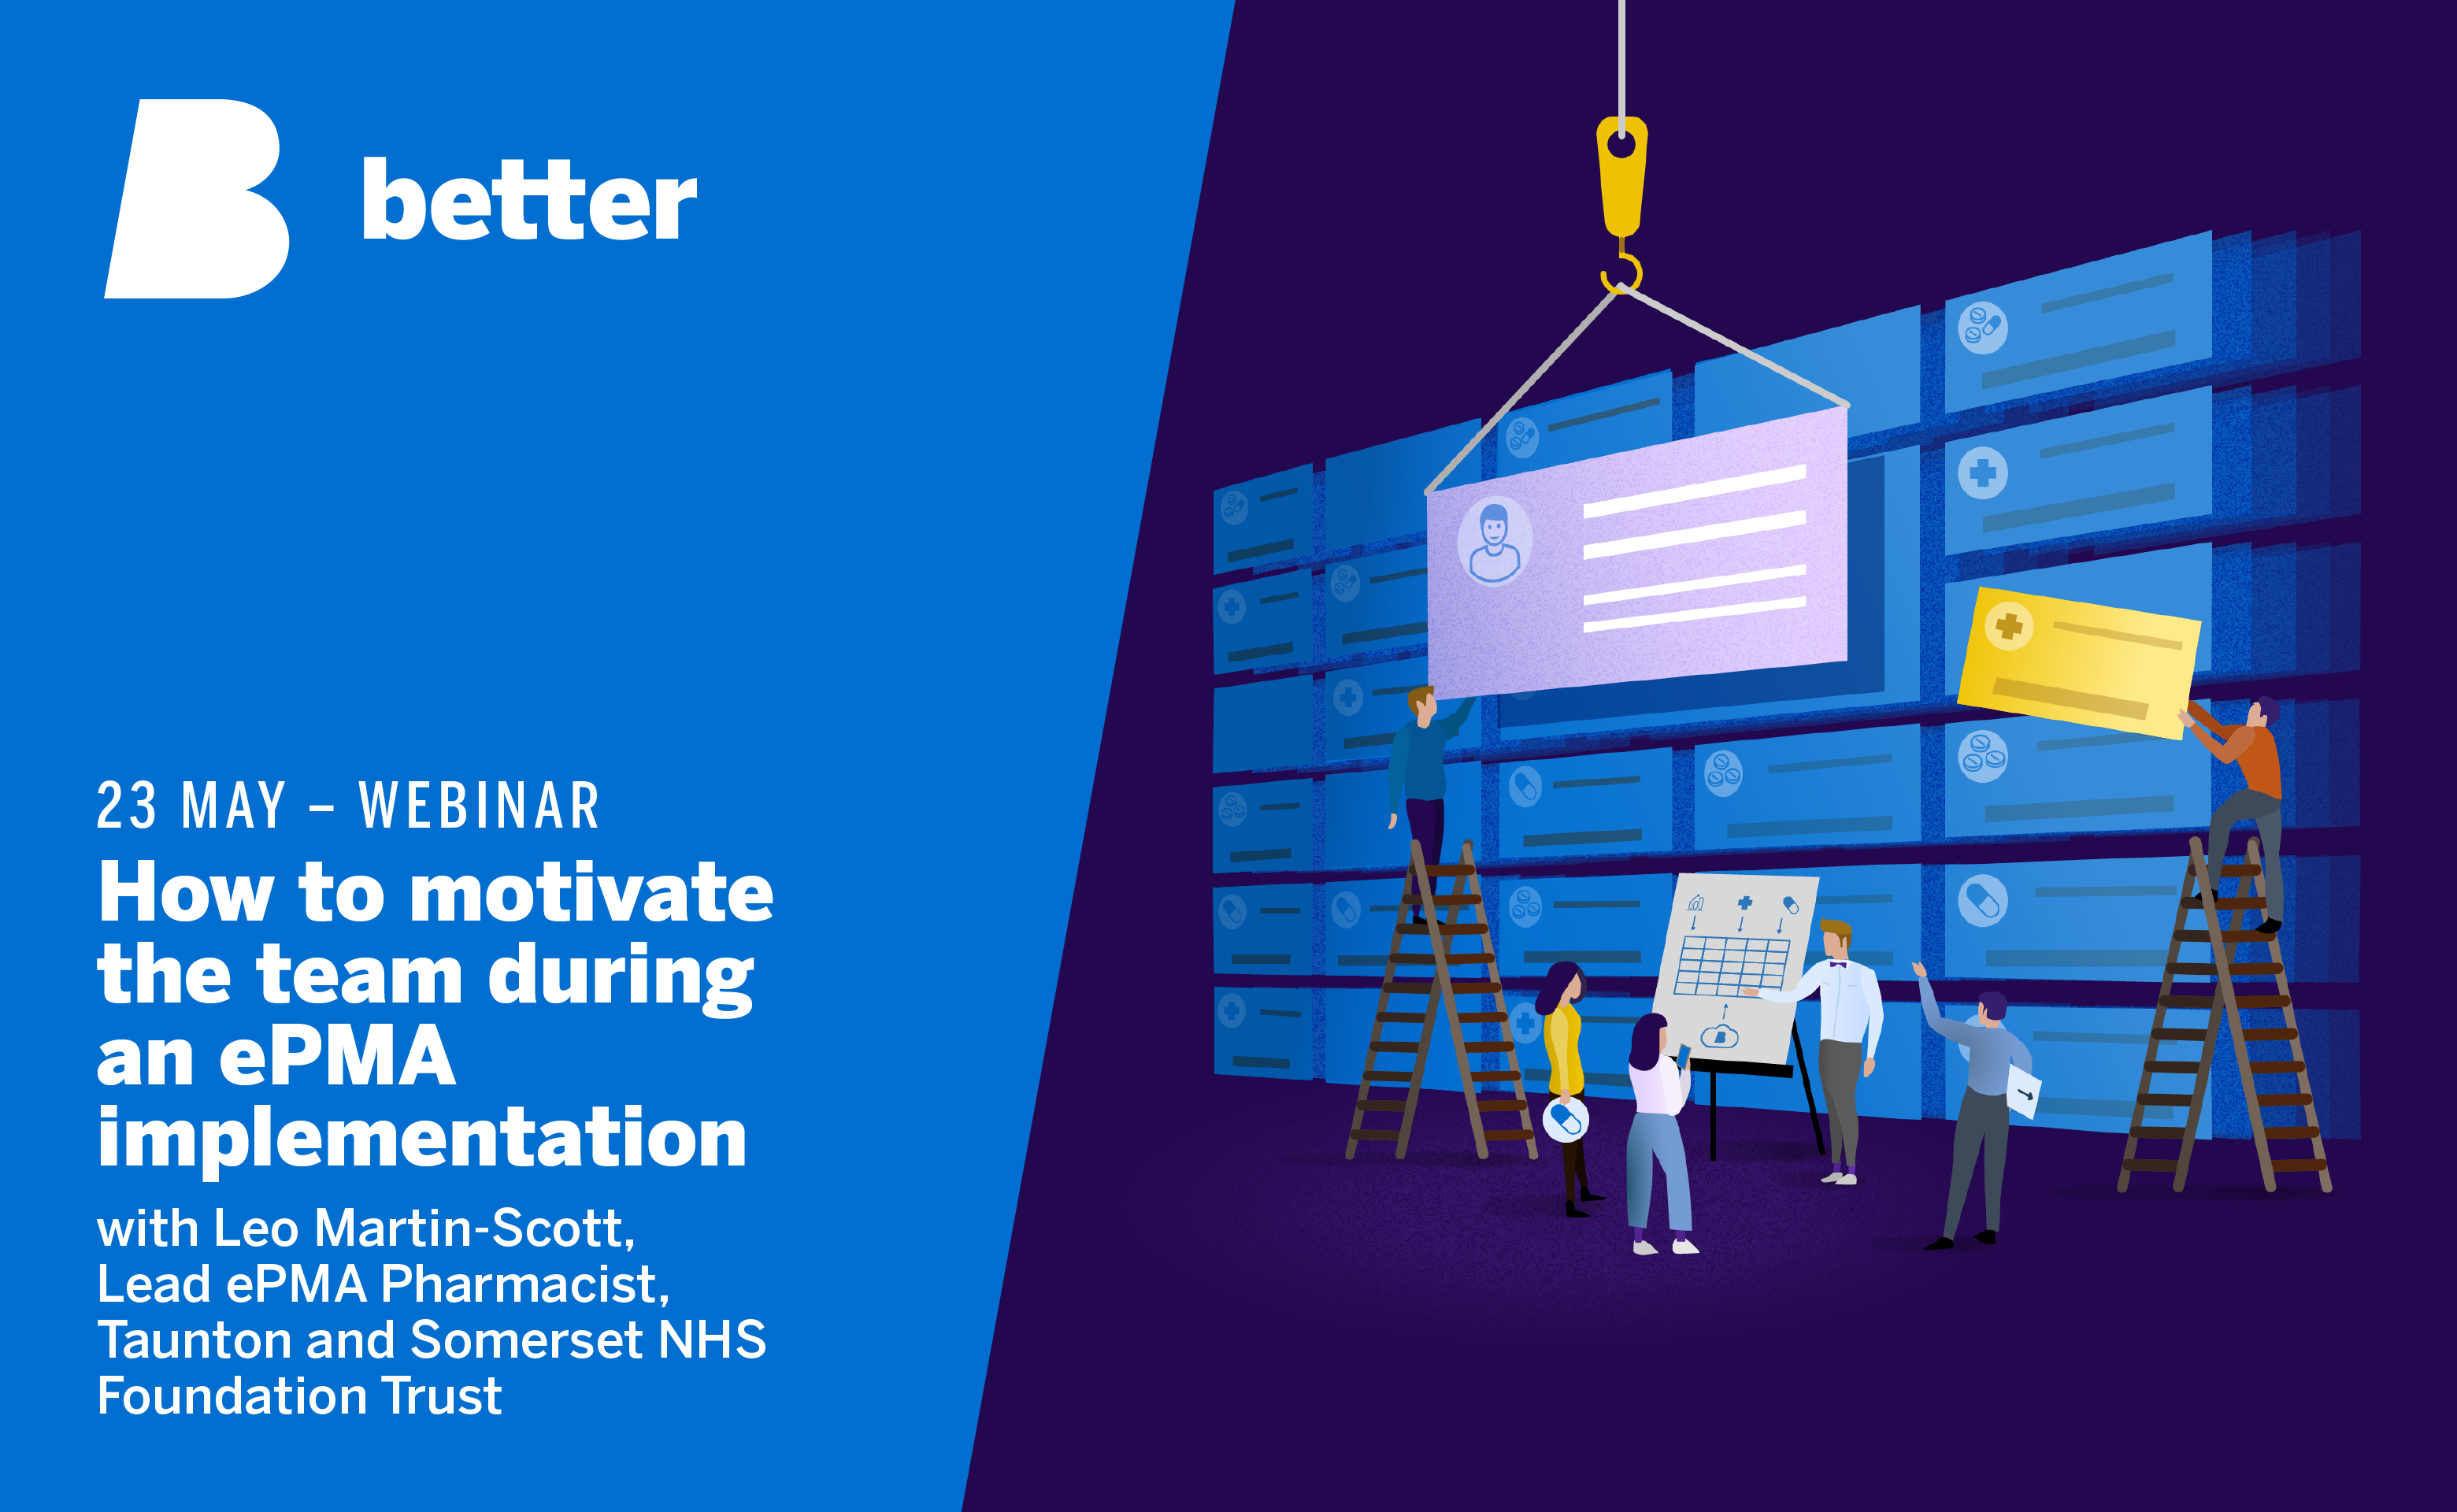 Join Anže Droljc and Leo Martin-Scott for a free webinar about how to motivate the team during an ePMA implementation